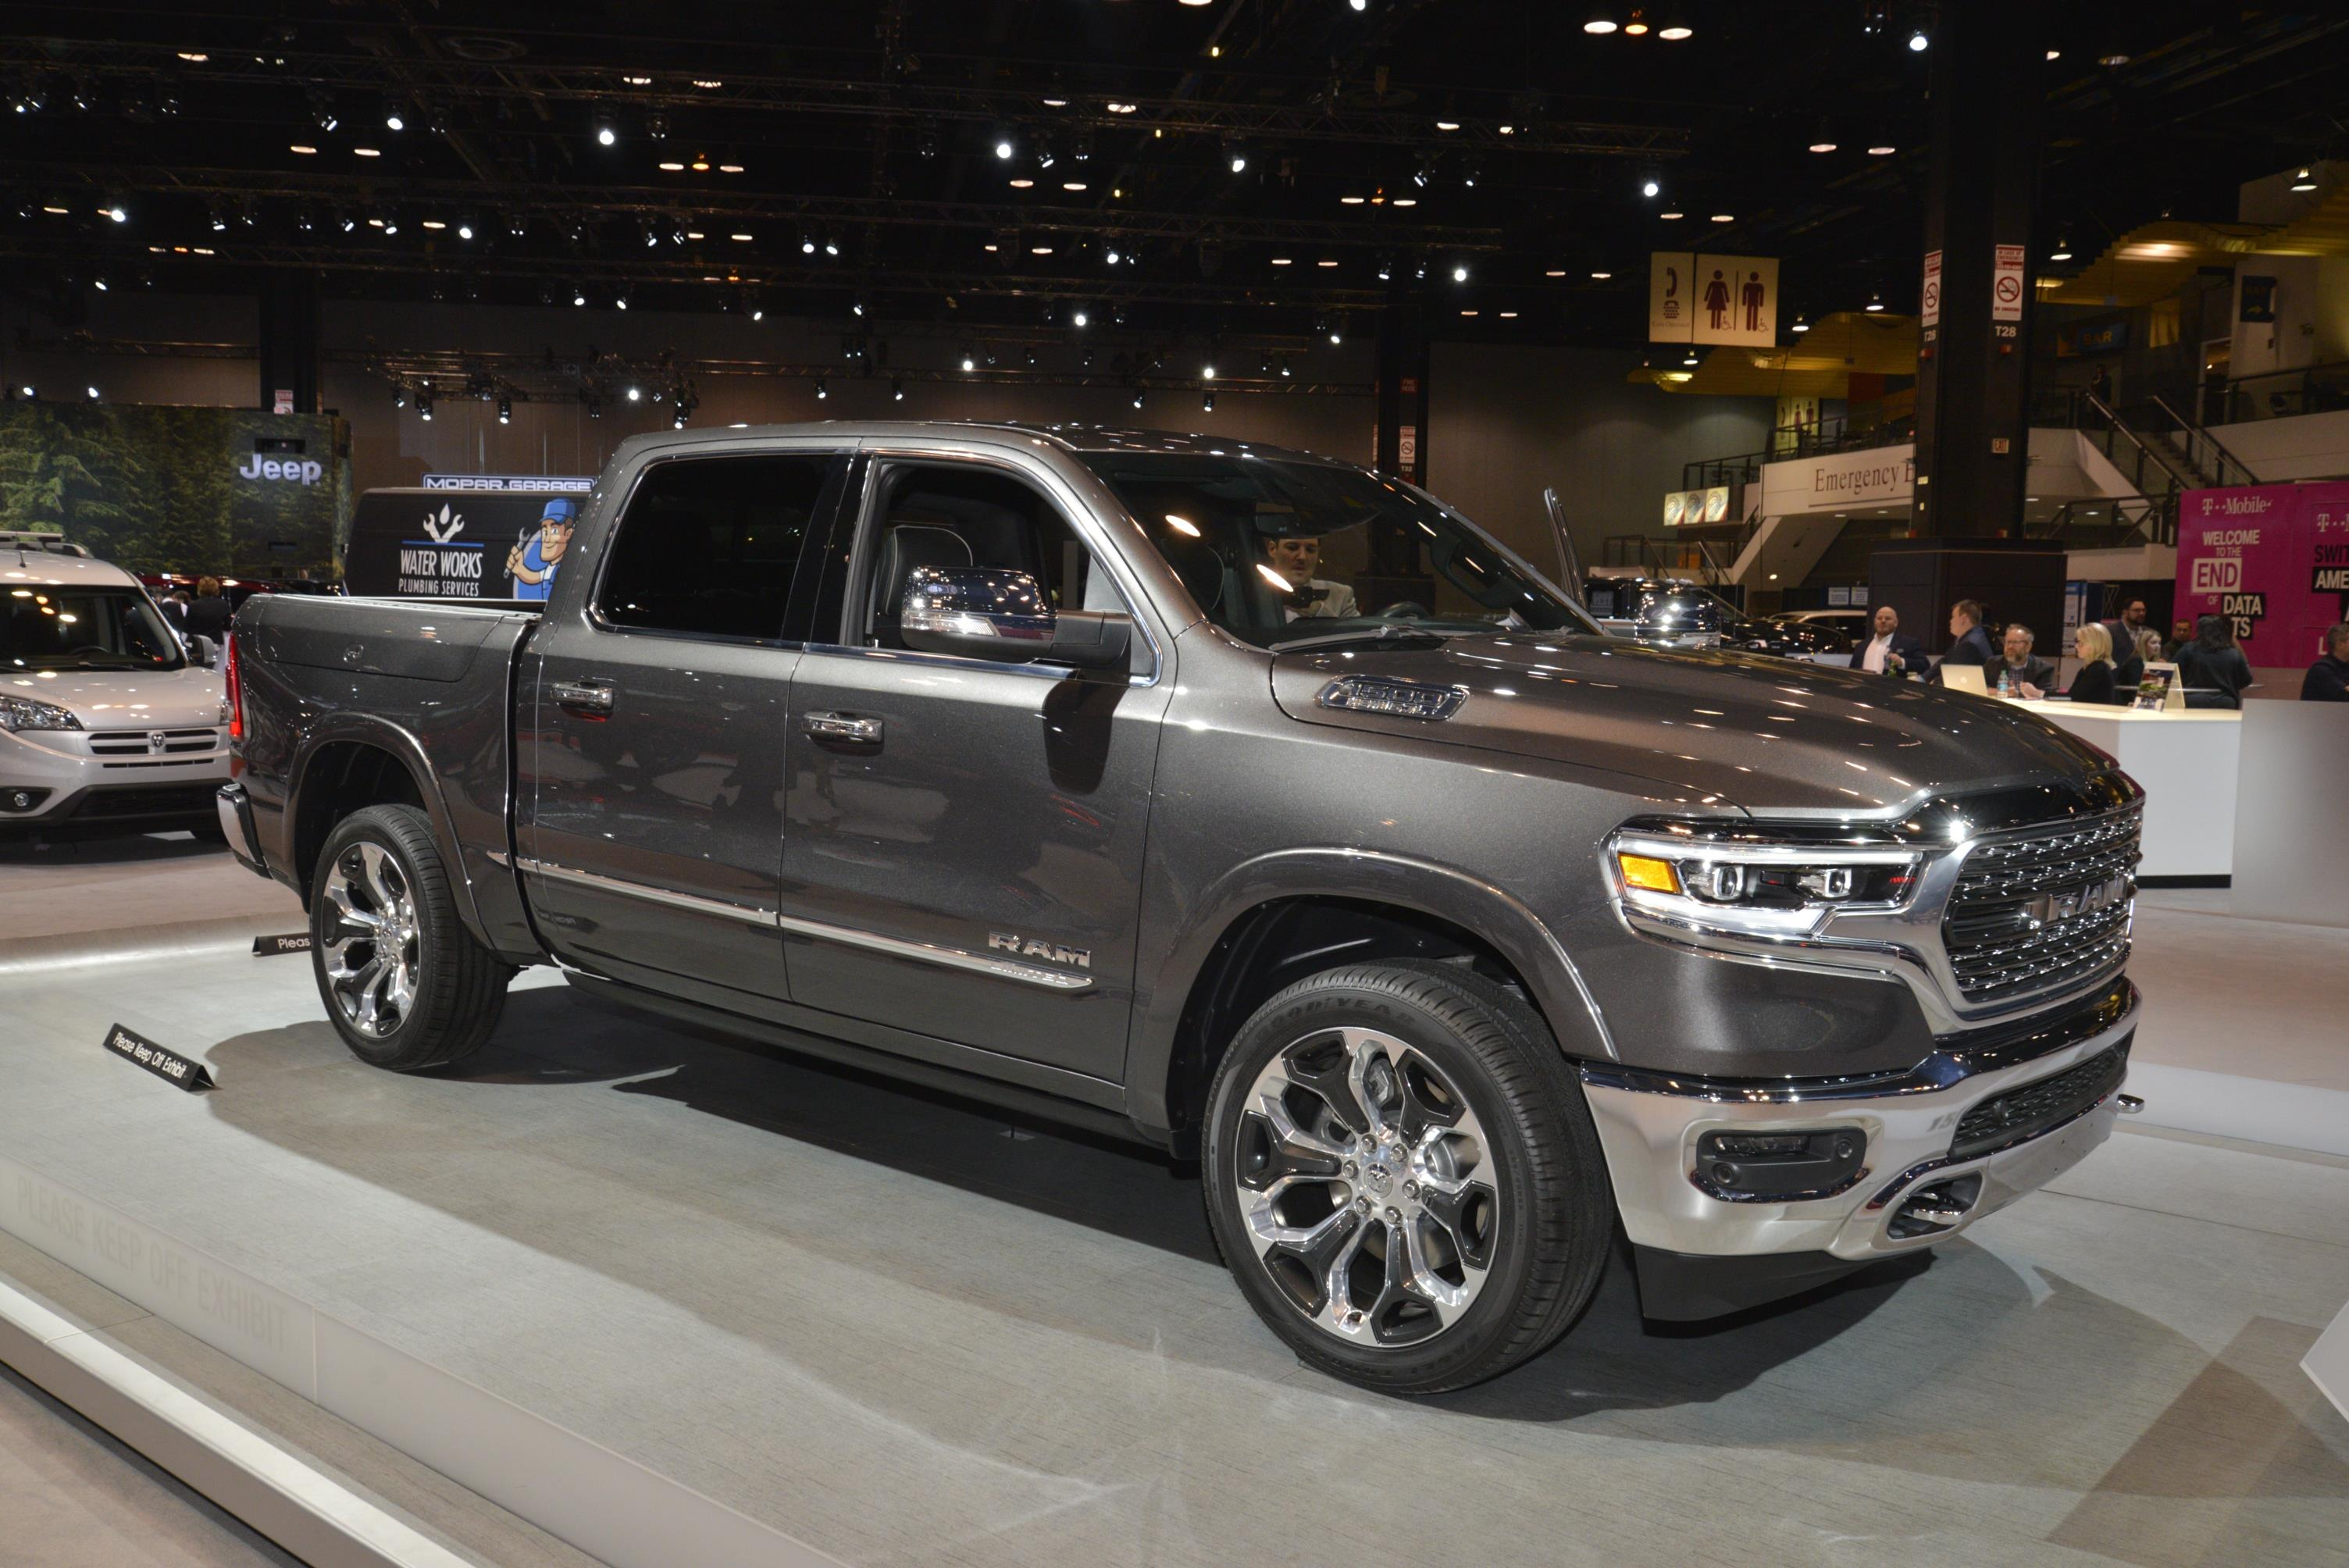 ALL-NEW 2019 RAM 1500 AT CHICAGO AUTO SHOW - myAutoWorld.com